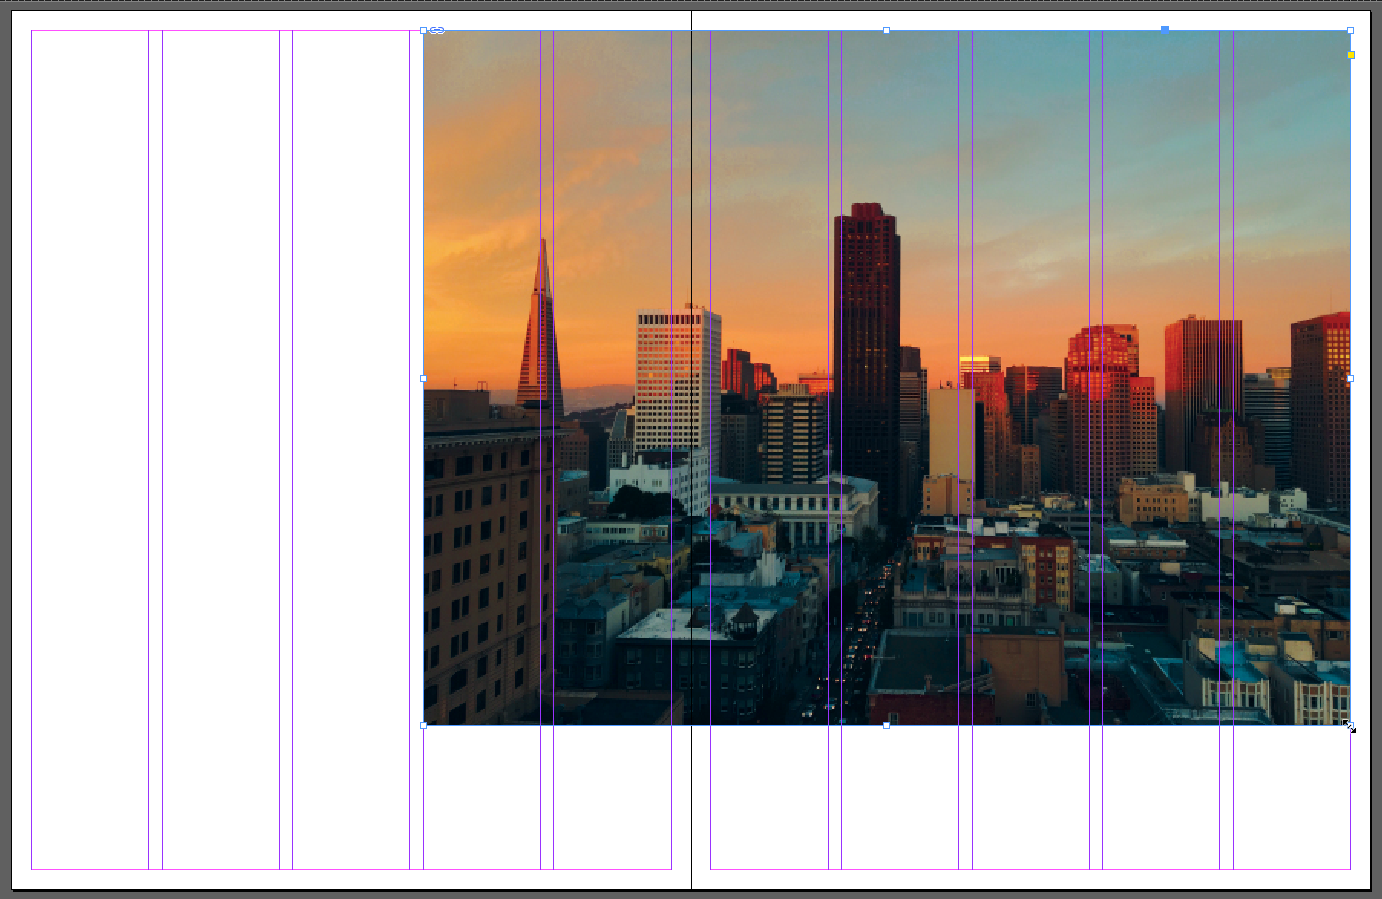 Screen capture showing a photo of a city skyline placed into a two-page spread layout in InDesign. The photo is 7 columns wide and positioned on the right side of the spread, leaving 3 columns of space on the left side of the spread.